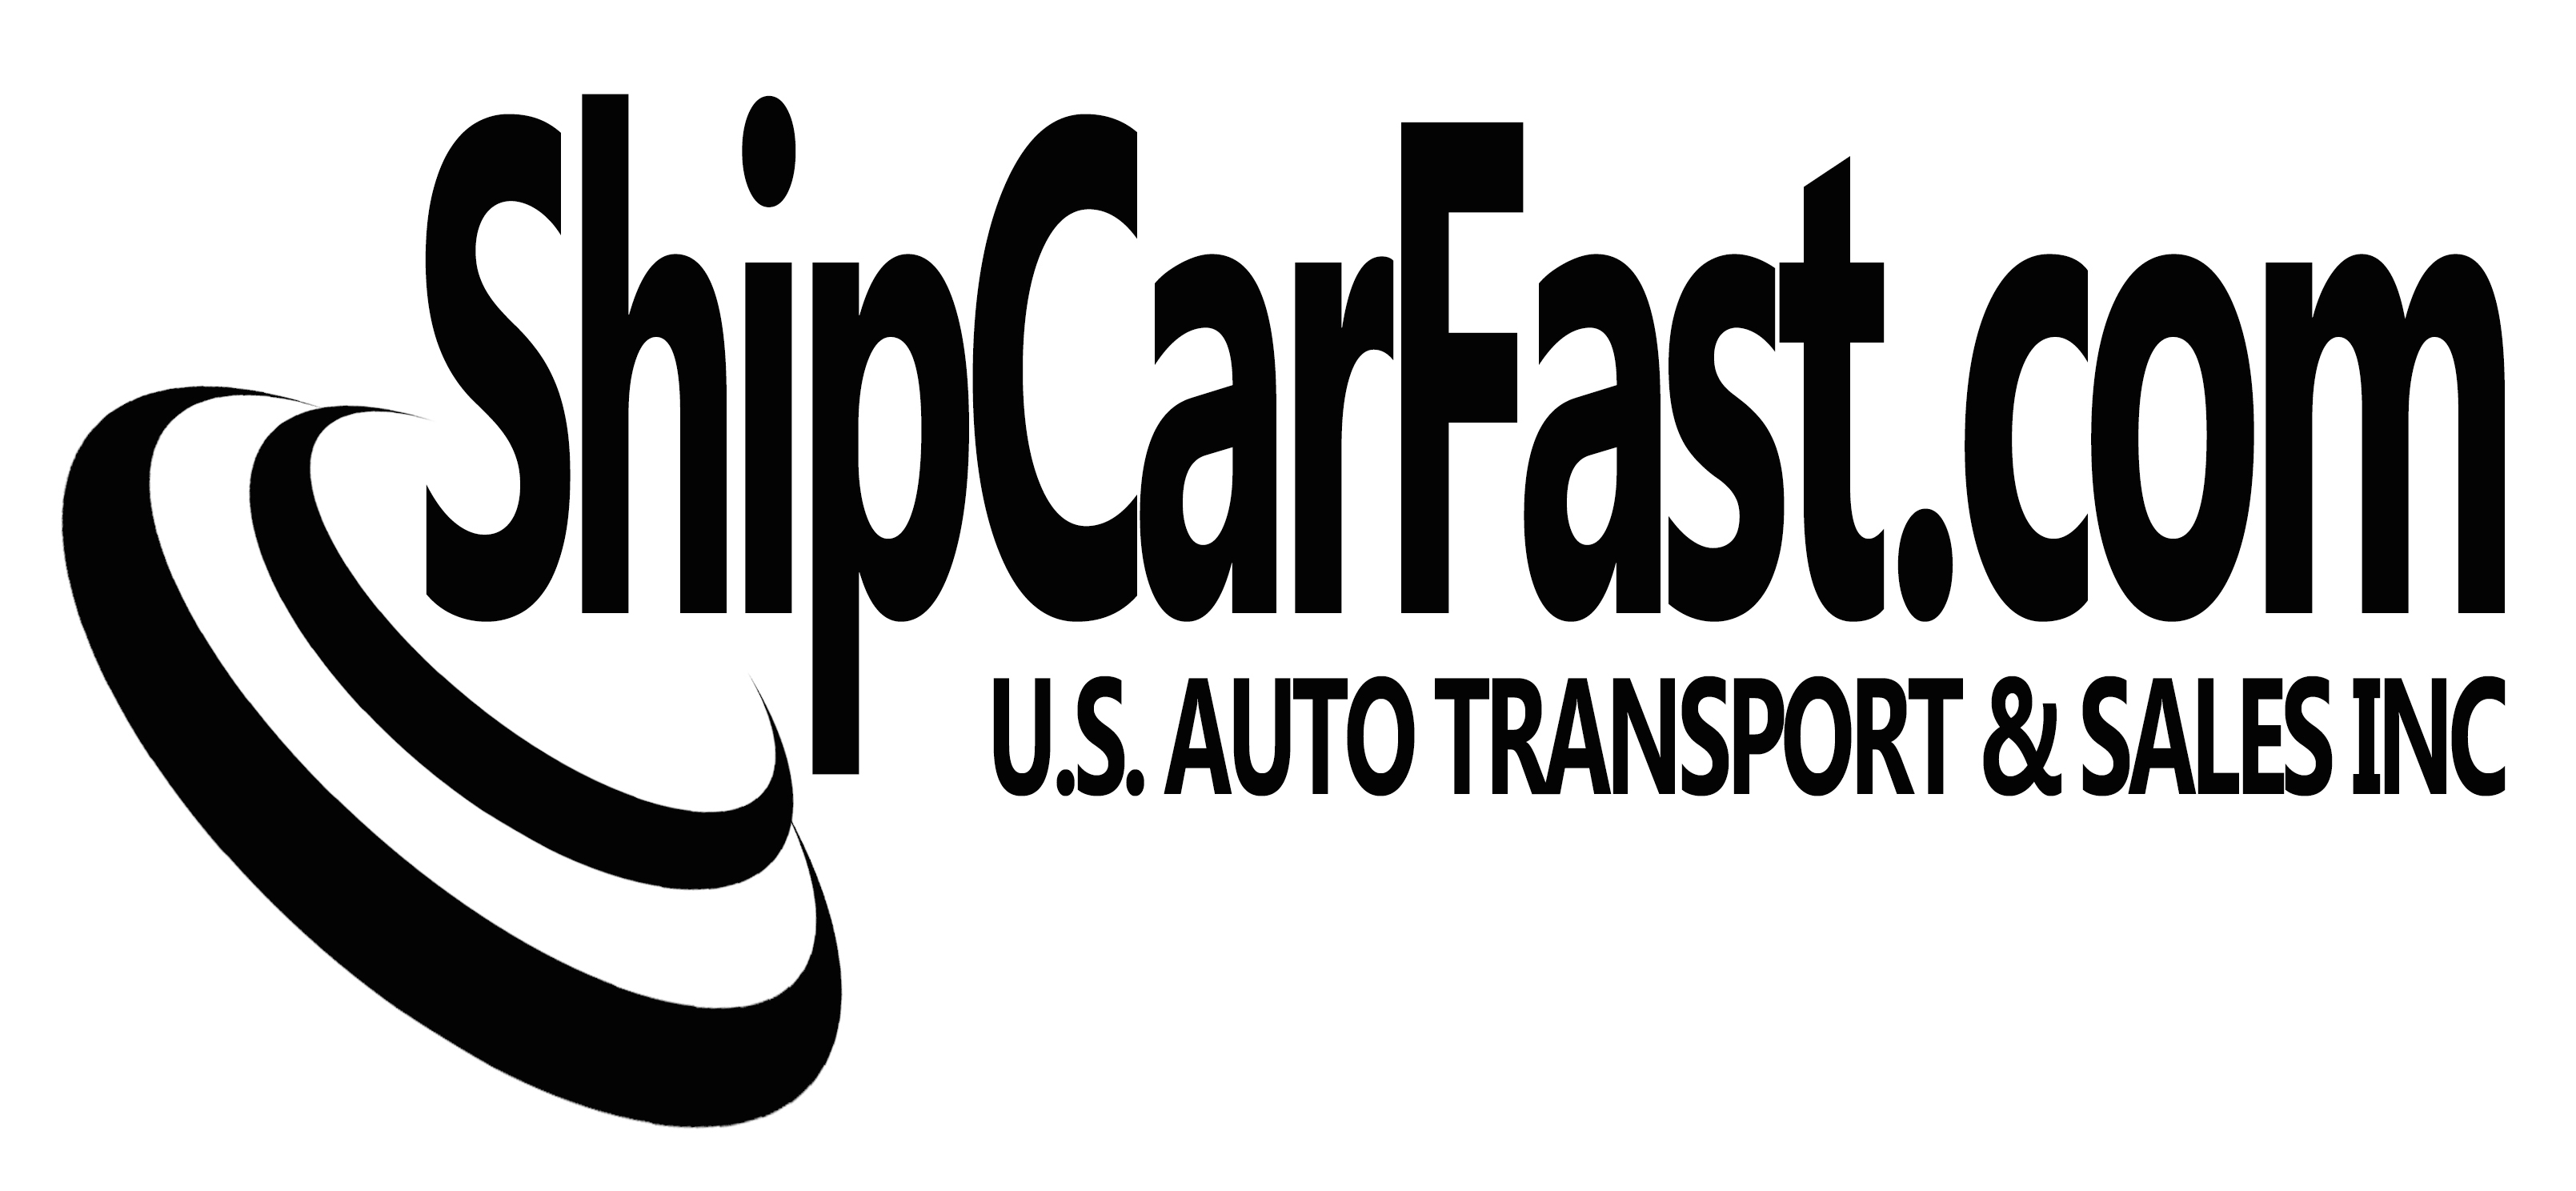 Auto Transport Quotes Us Auto Transport  Reviews And Ratings Of Auto Transport Company